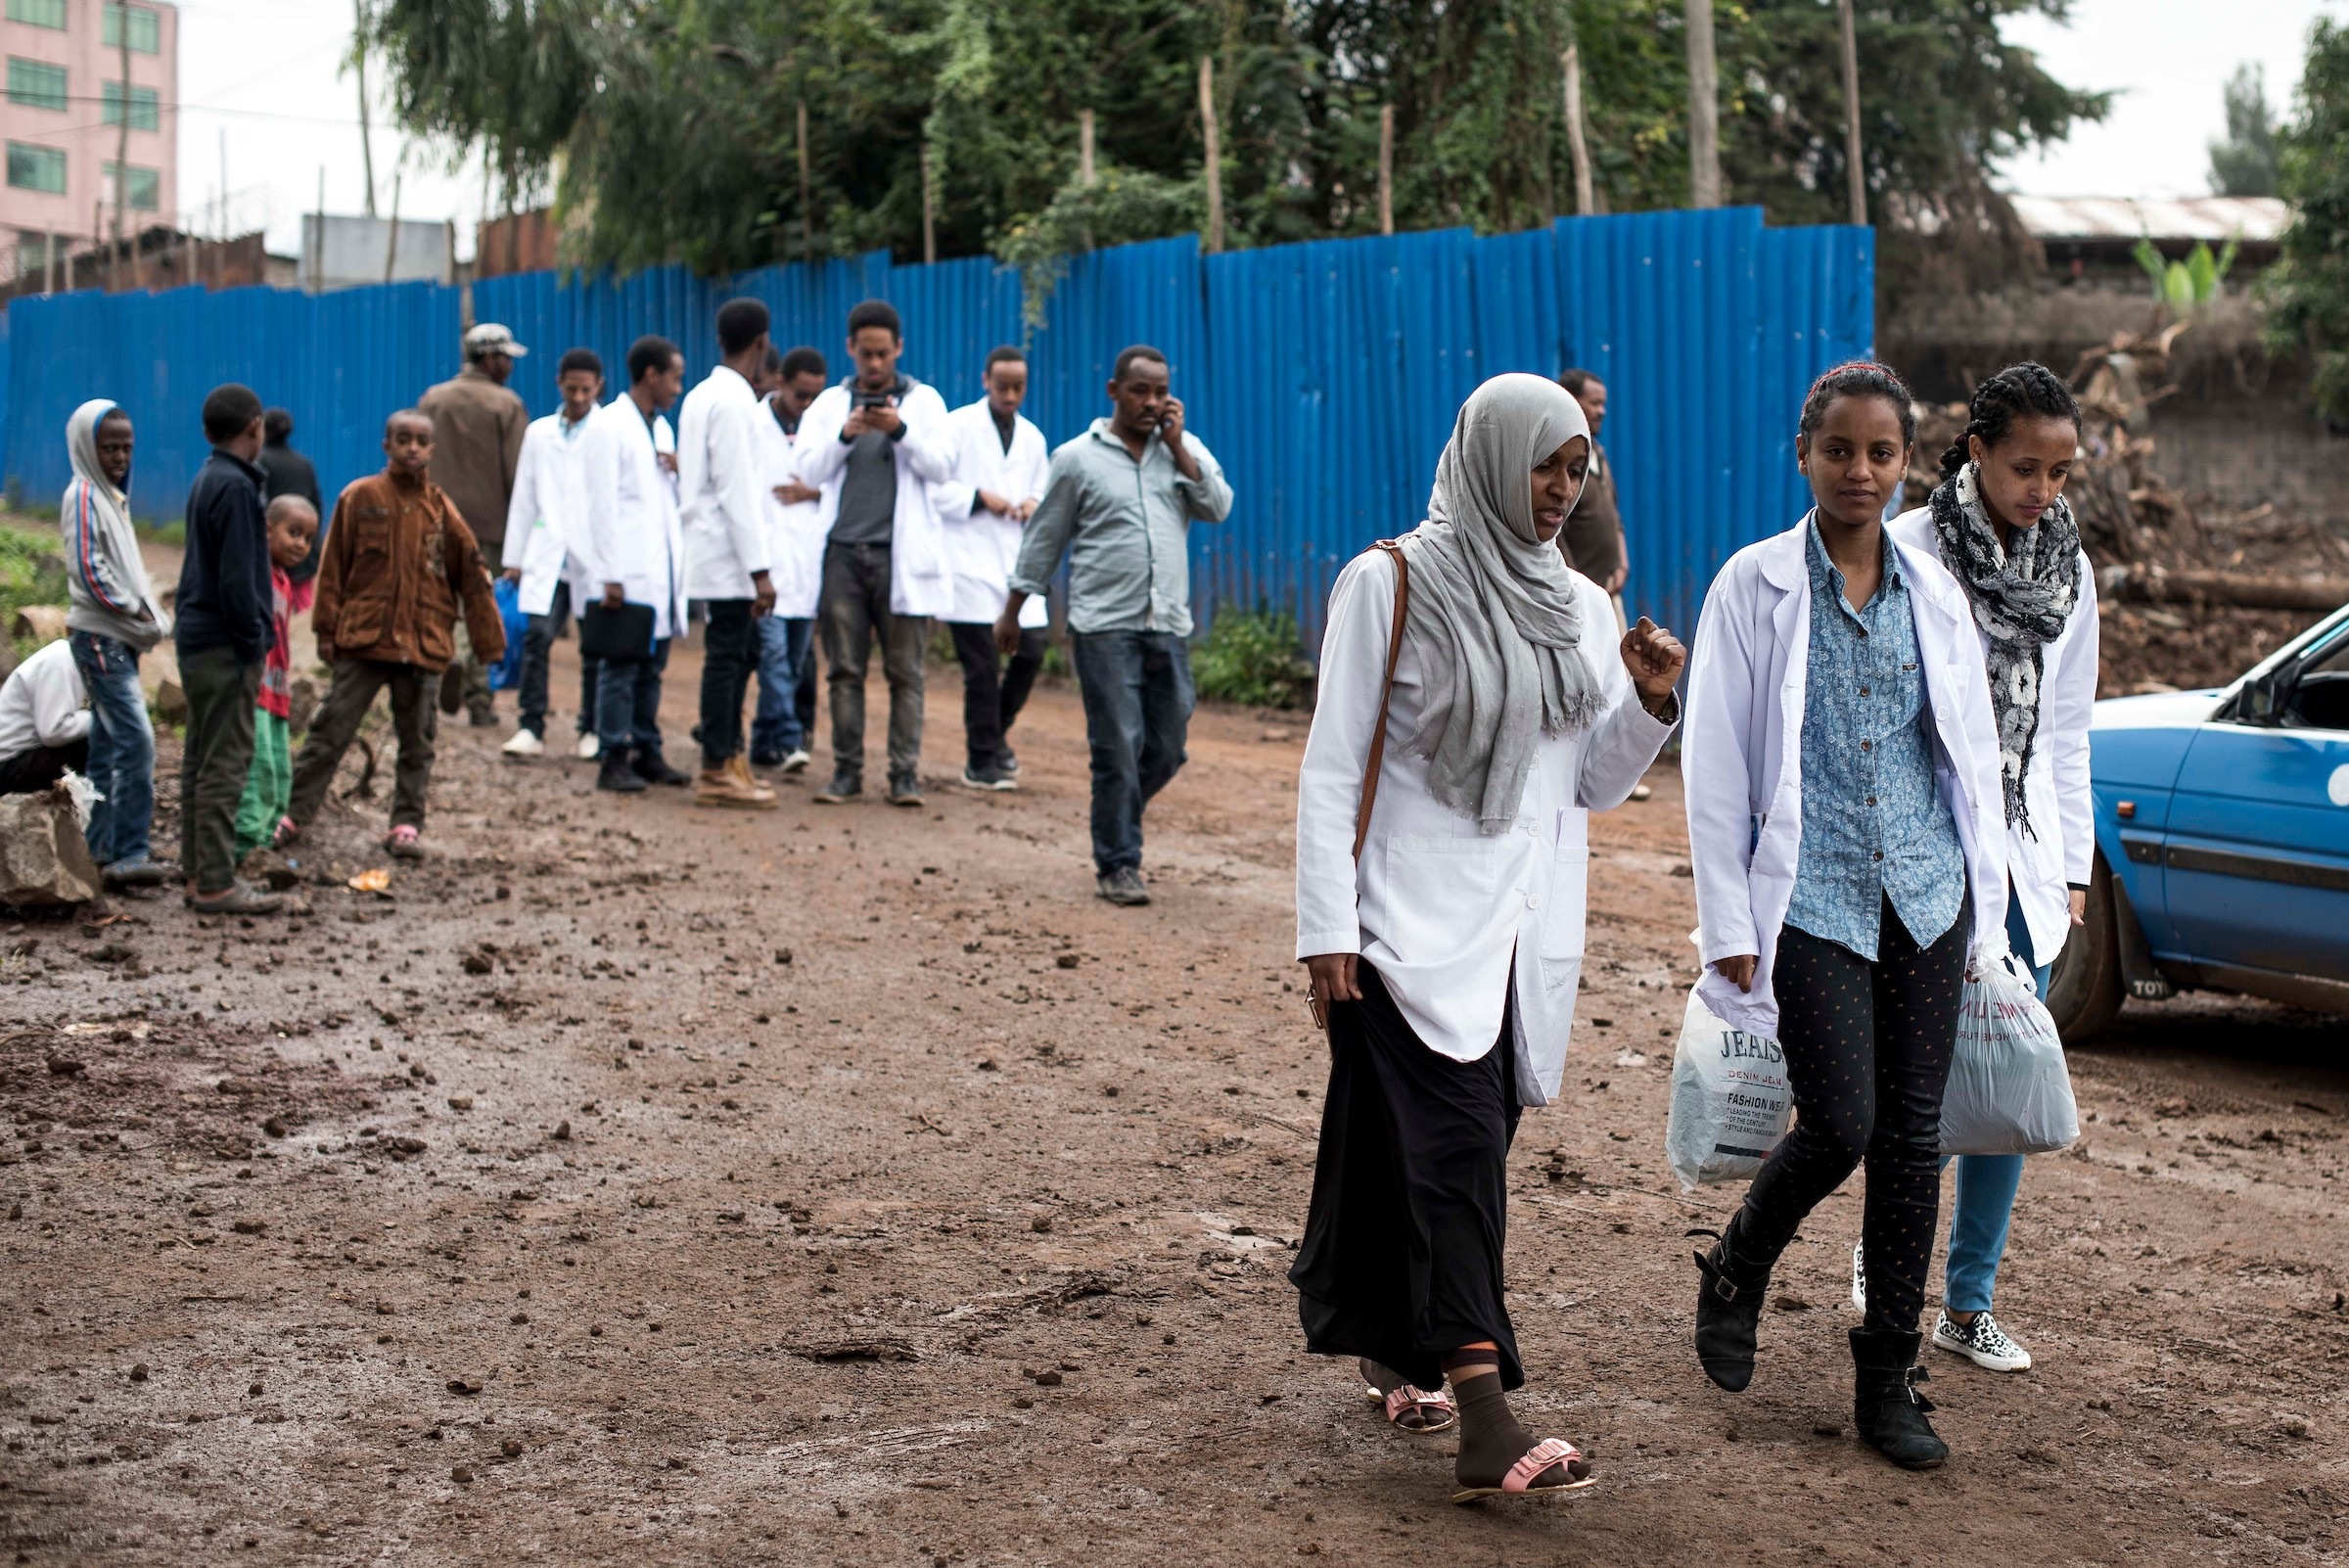 The doctor surge in Ethiopia - Healthcare in America